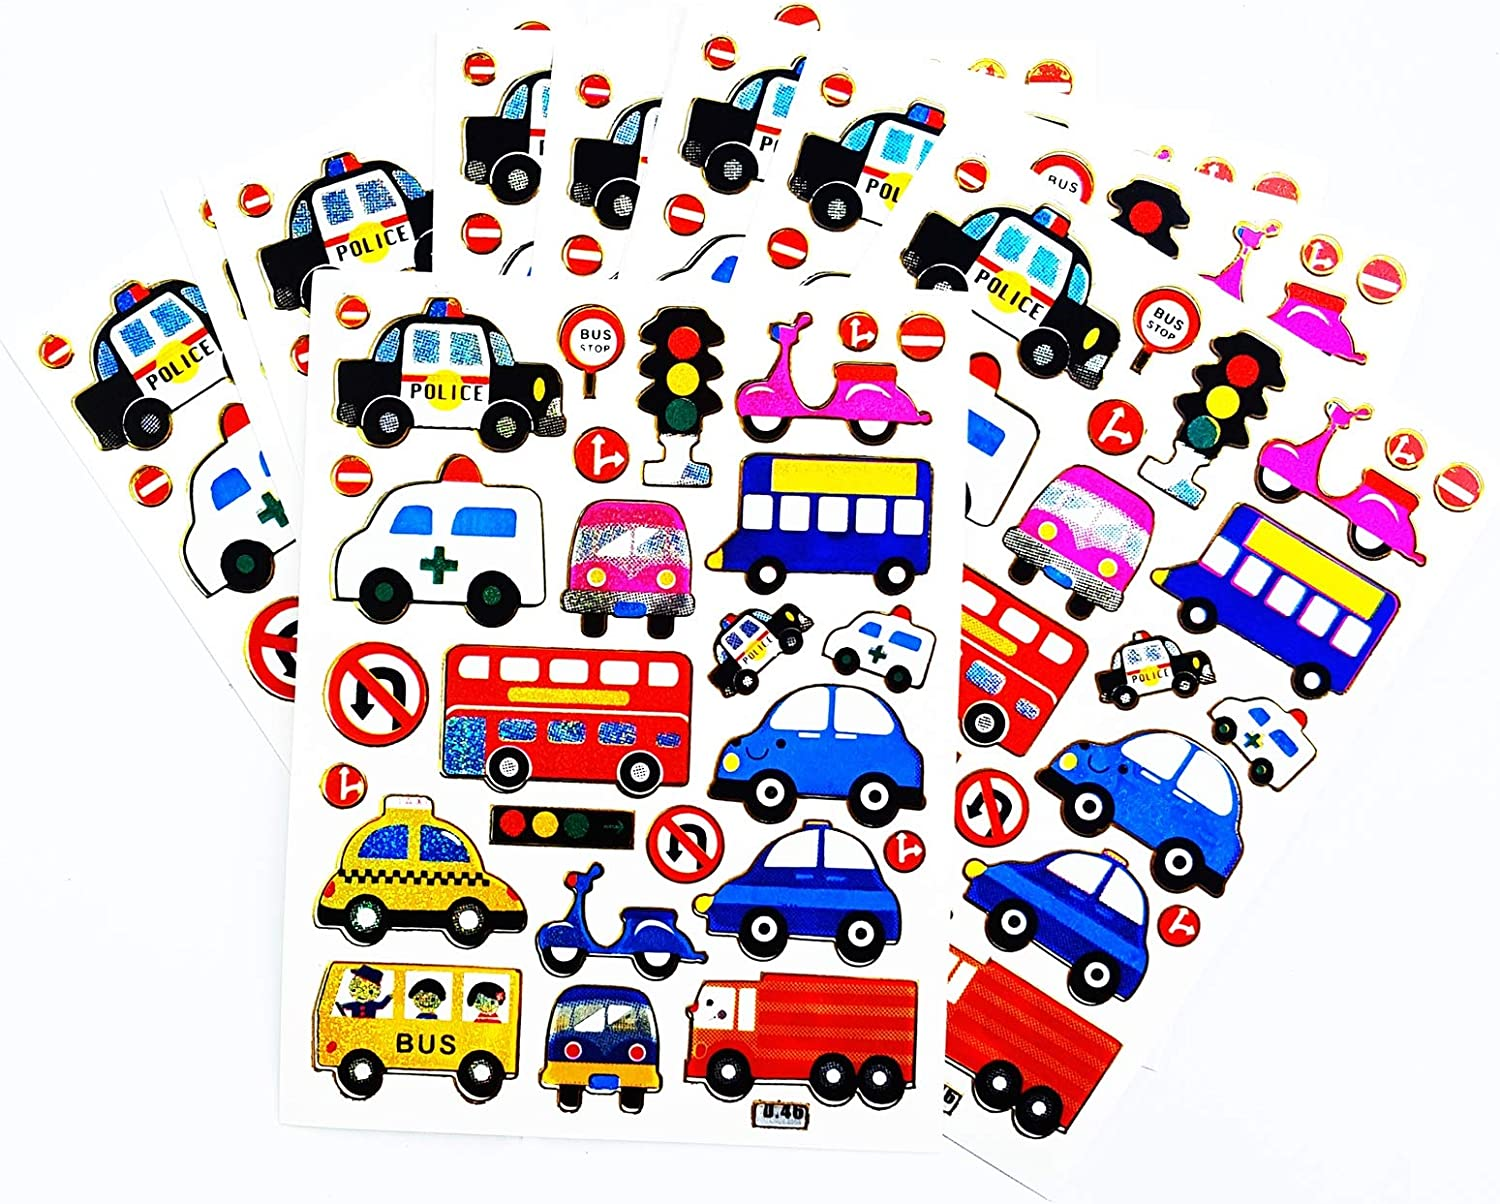 Amazon Com 10 Sheets Police Car Cartoon Bus Stickers Traffic Car Stickers Children Boys Christmas Gift Toy Album Decor Stickers Scrapbook Craft For Kids Nursery Birthday Party Crafts For Kids